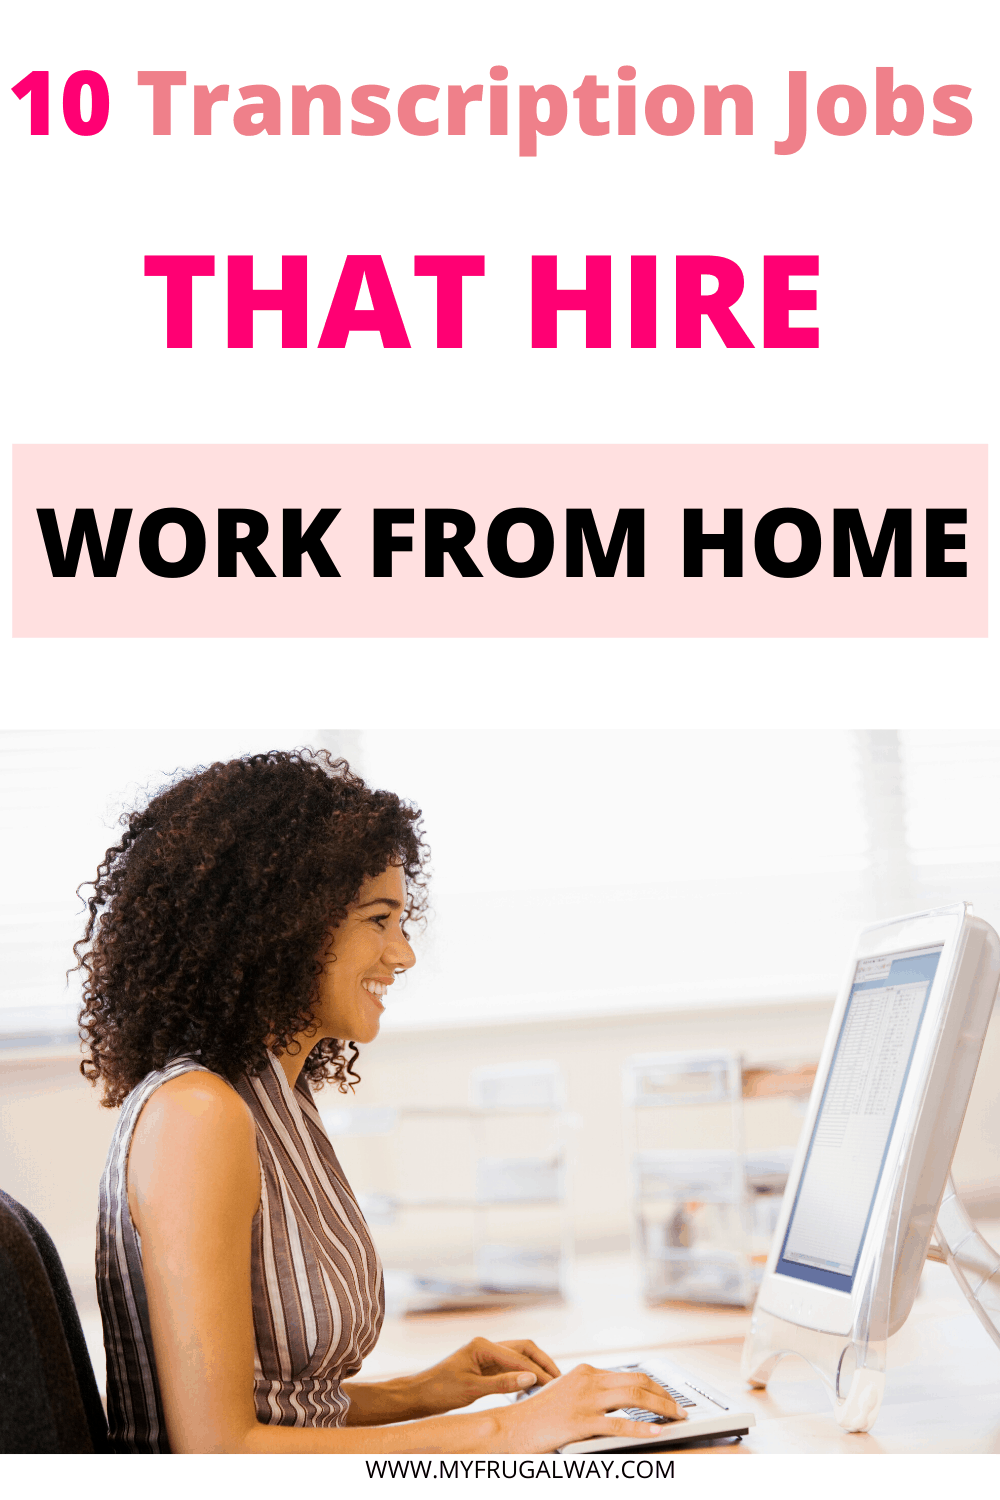 10 companies that hire work from home transcription jobs. If you are a stay at home mom looking to earn extra money these transcription jobs are perfect for beginners. #workfromhome #stayathomemoms #mompaneur #girlboss #extraincome #sidehustle #transcibe